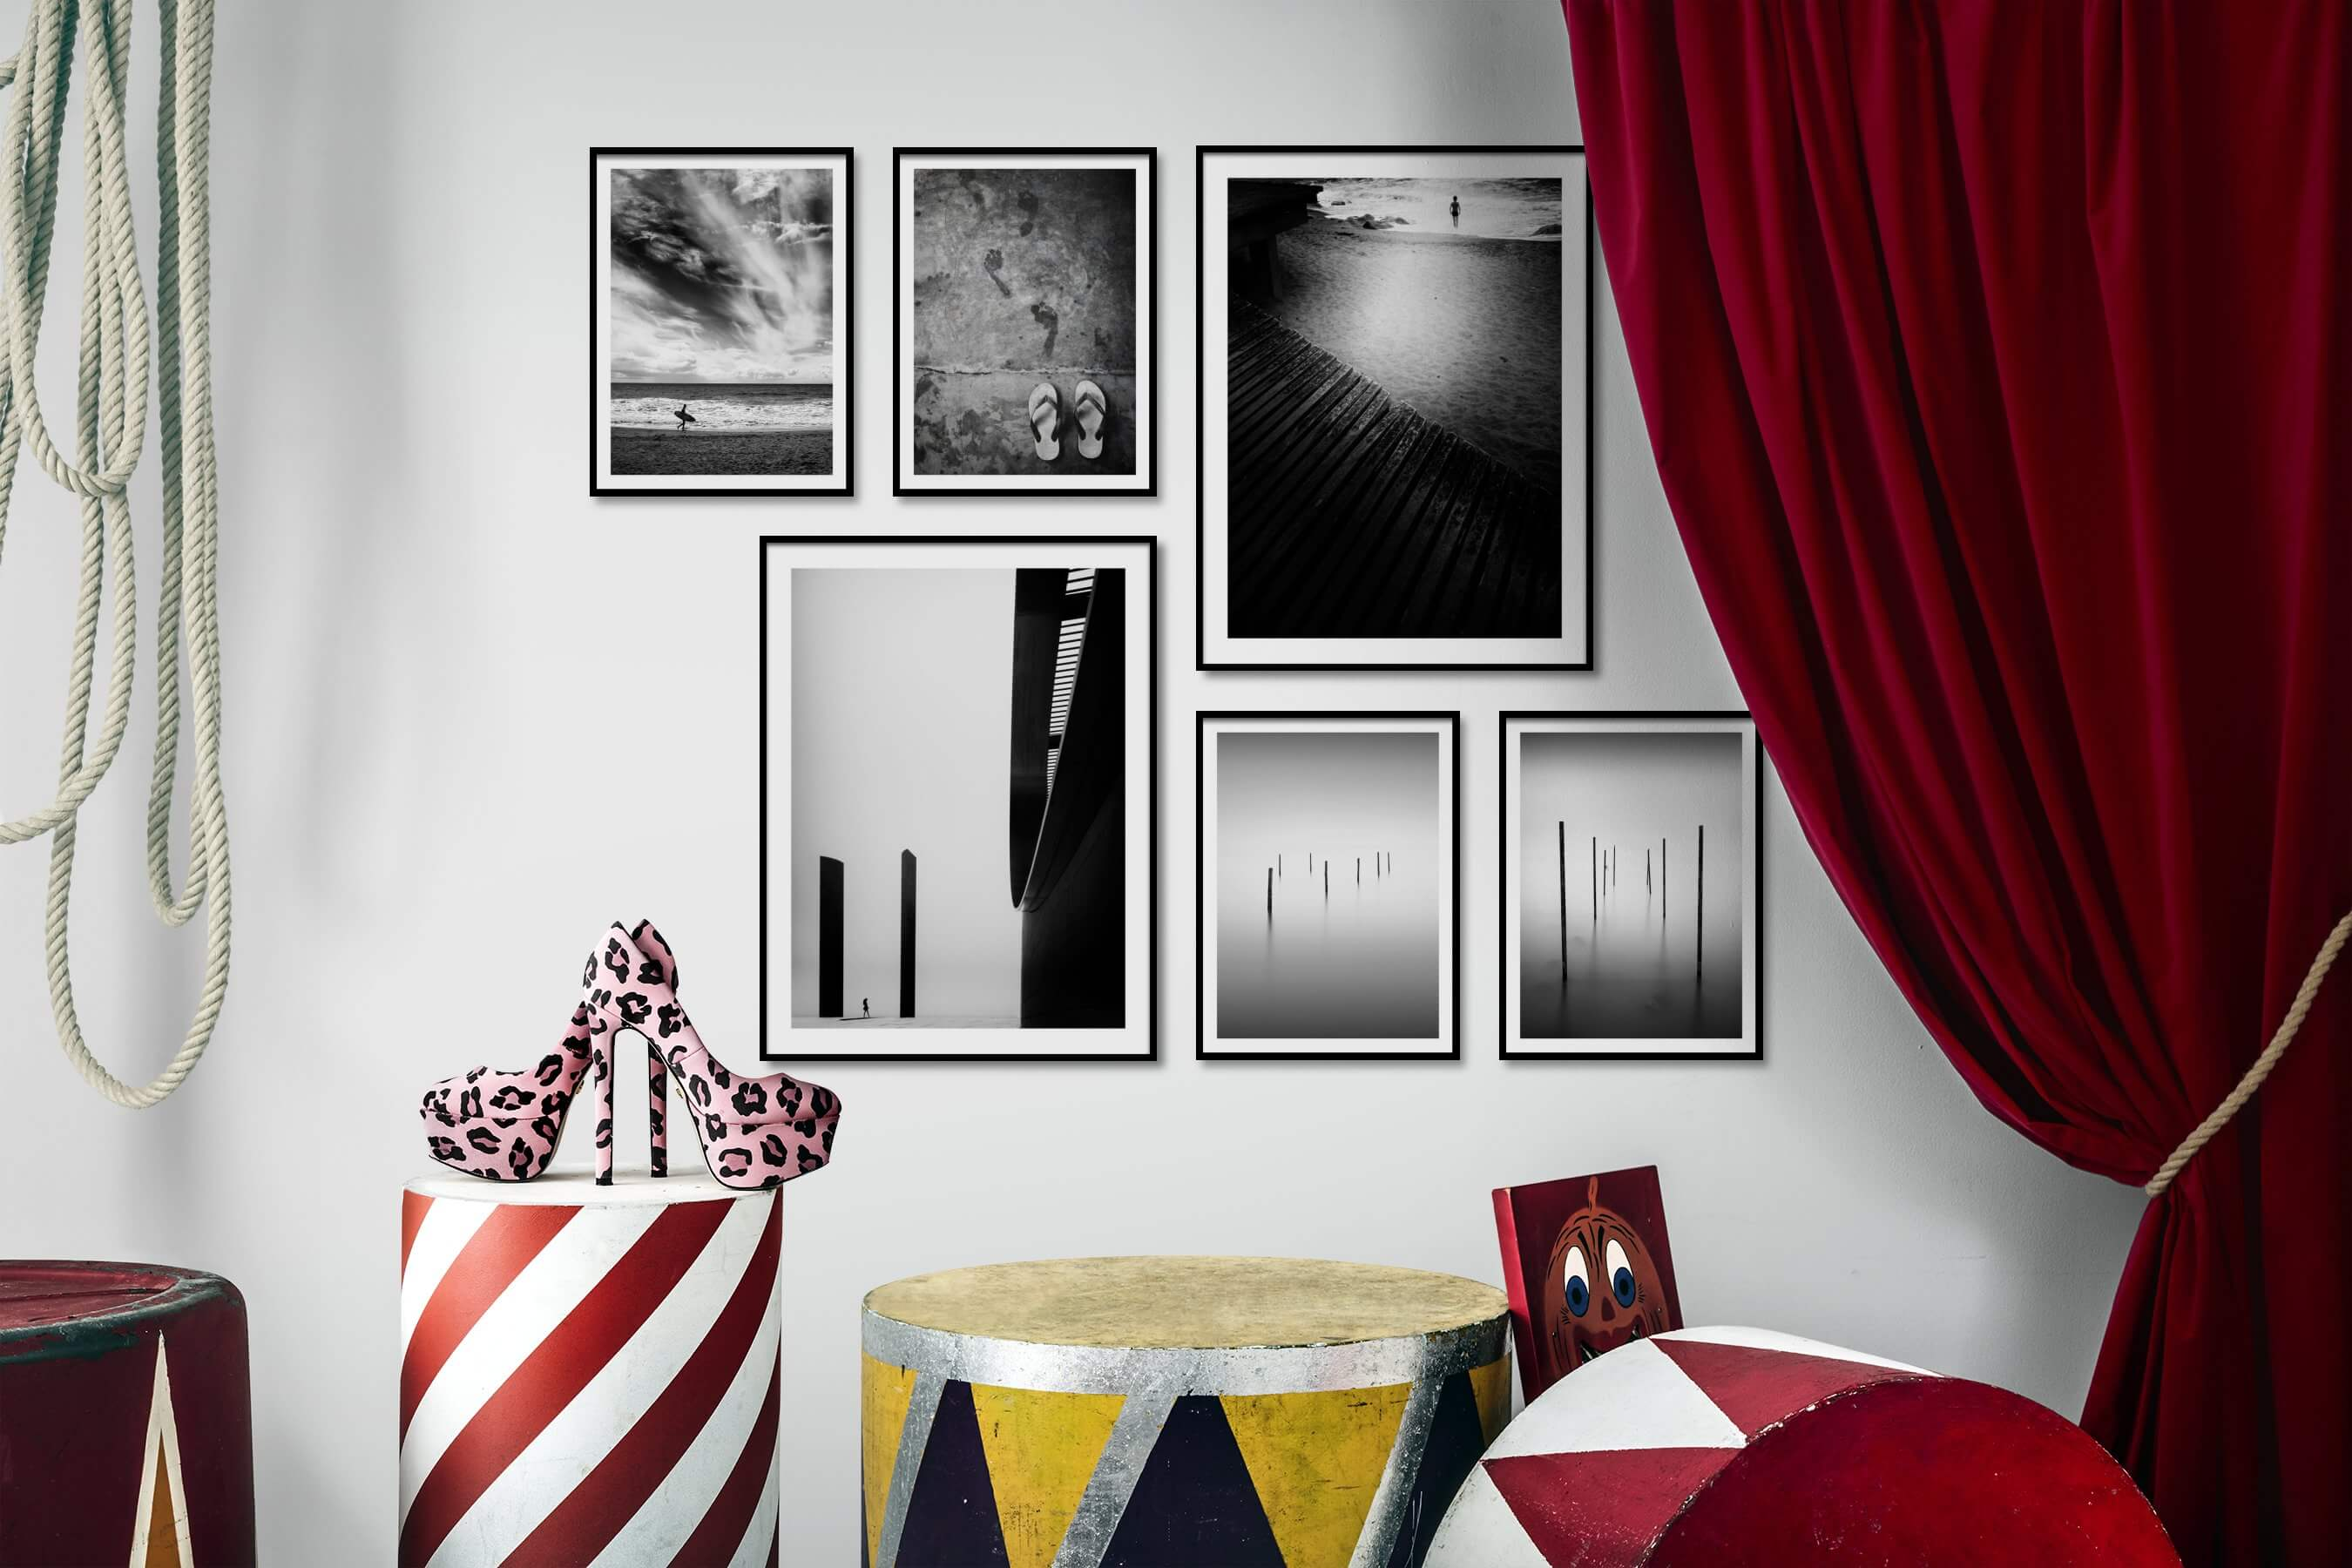 Gallery wall idea with six framed pictures arranged on a wall depicting Black & White, Beach & Water, For the Minimalist, and Mindfulness